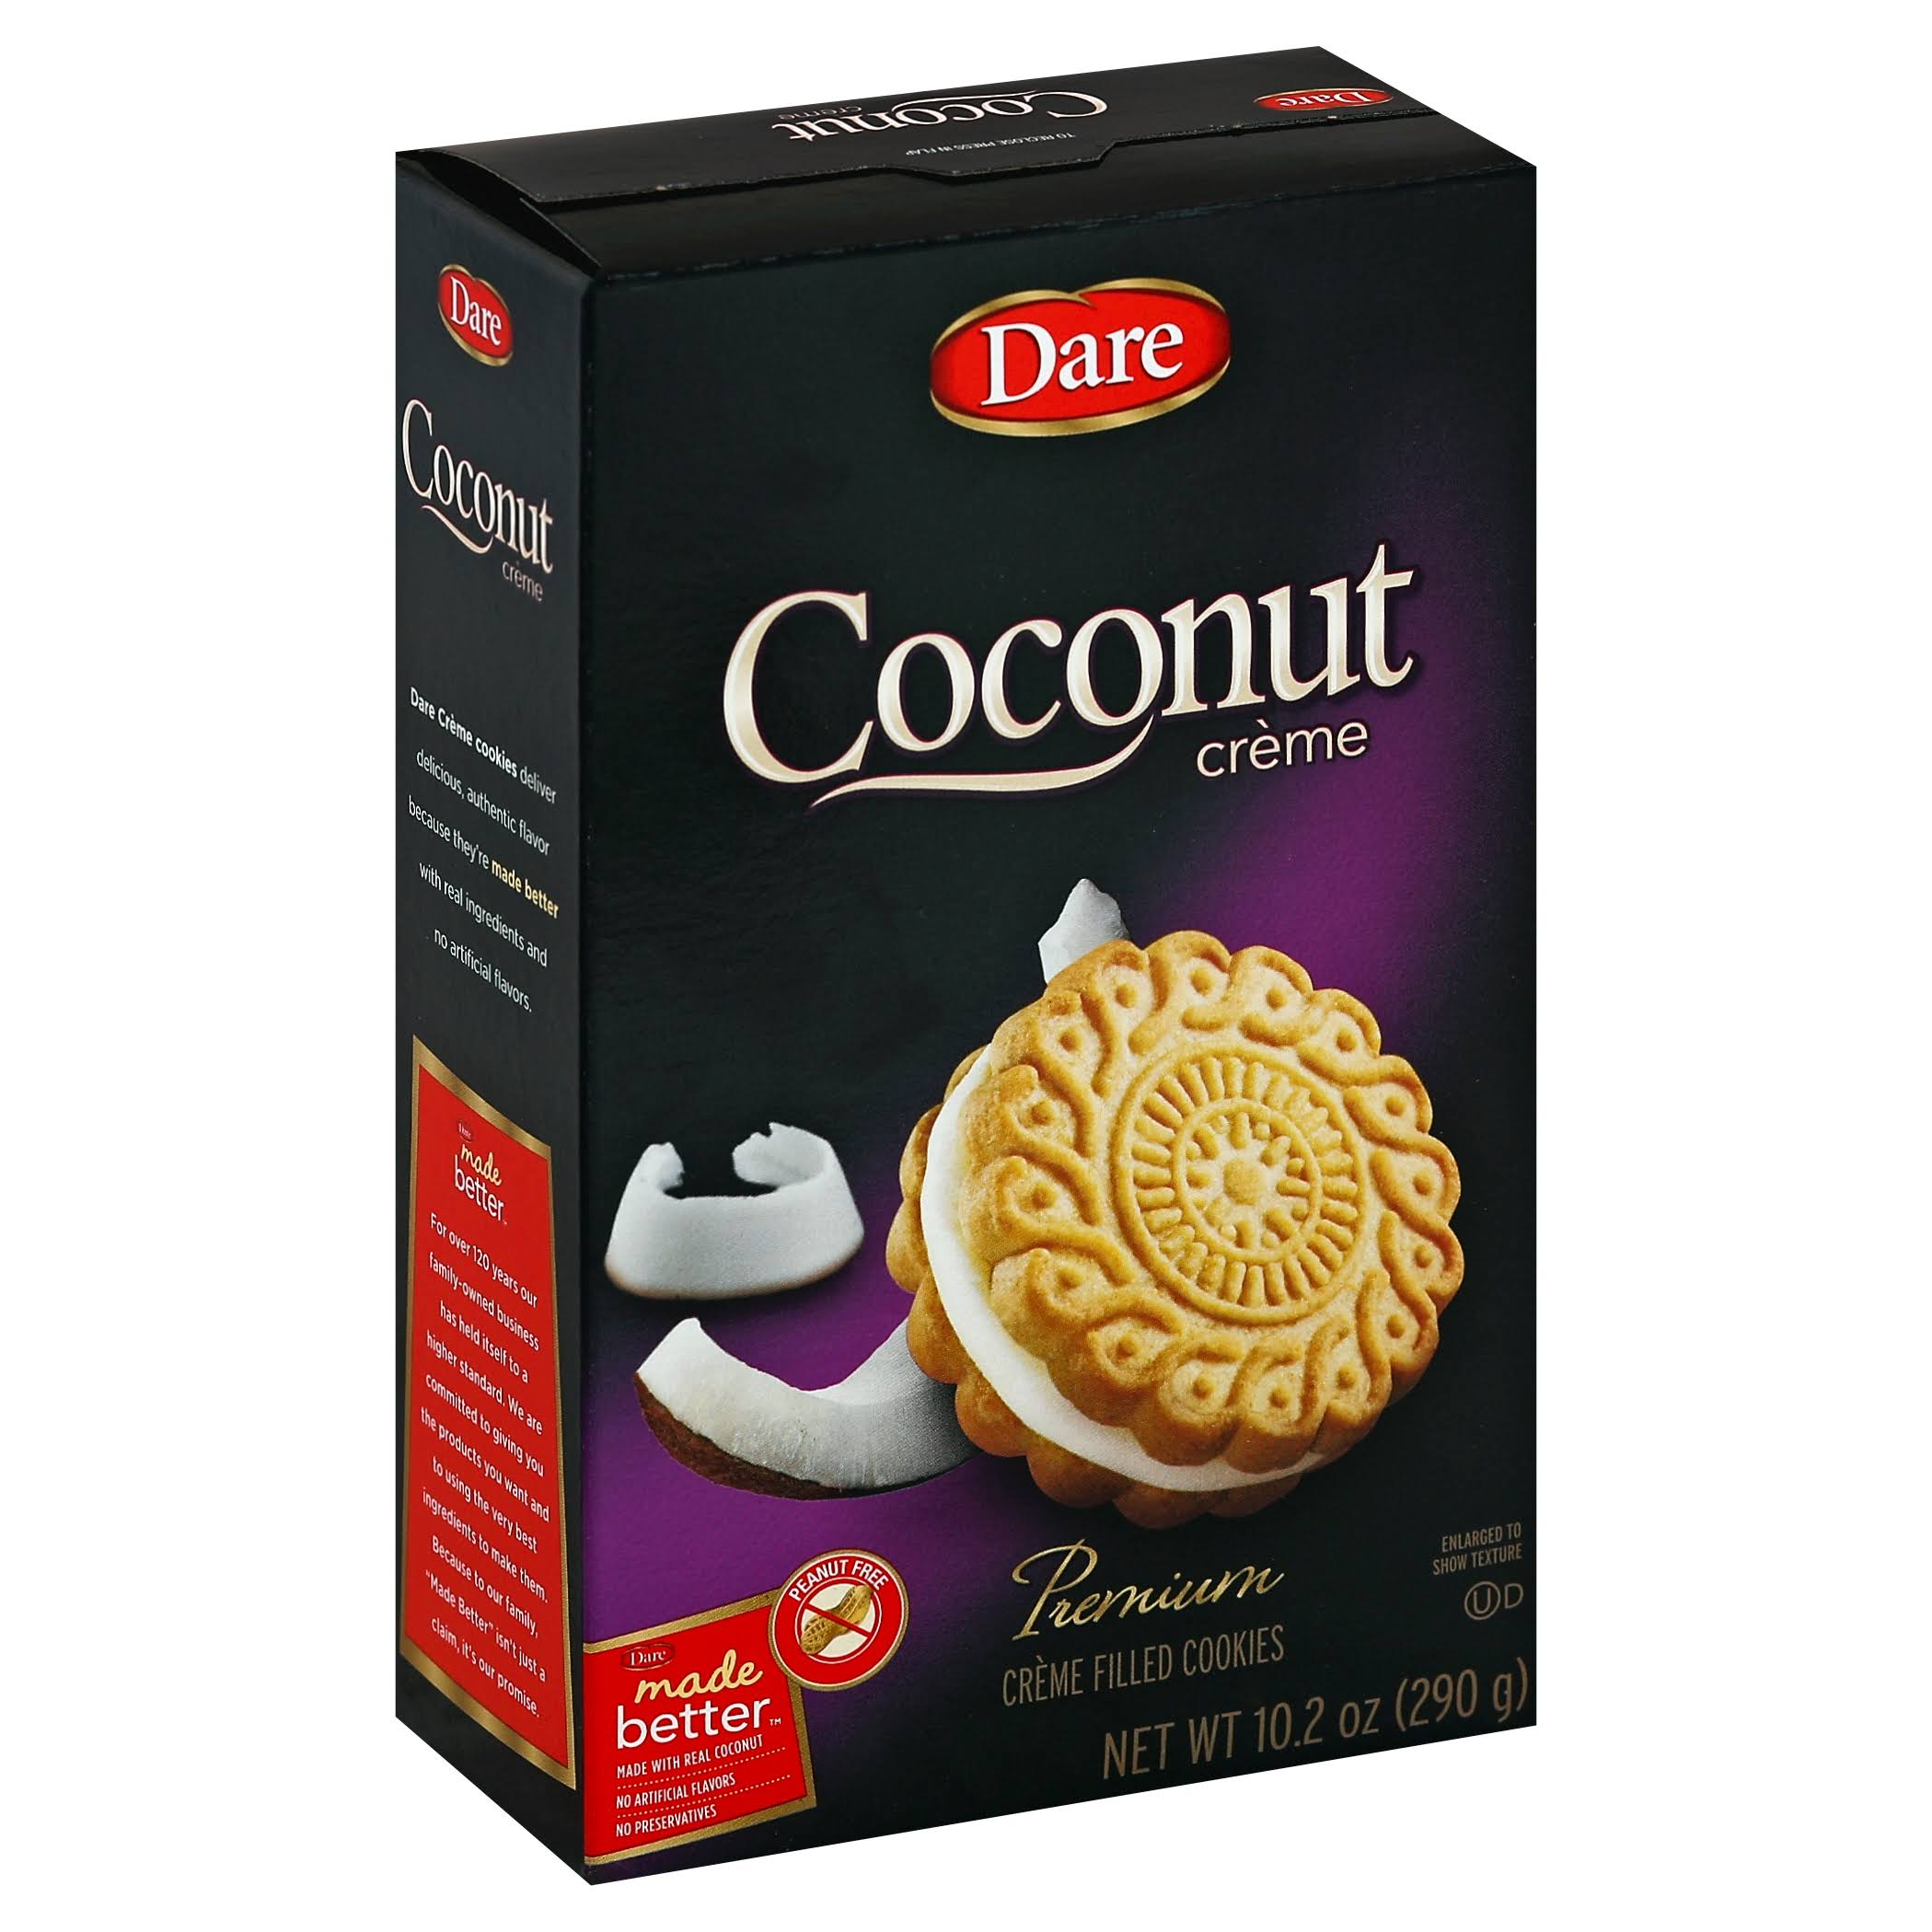 Dare Cookies, Creme Filled, Coconut Creme - 10.2 oz